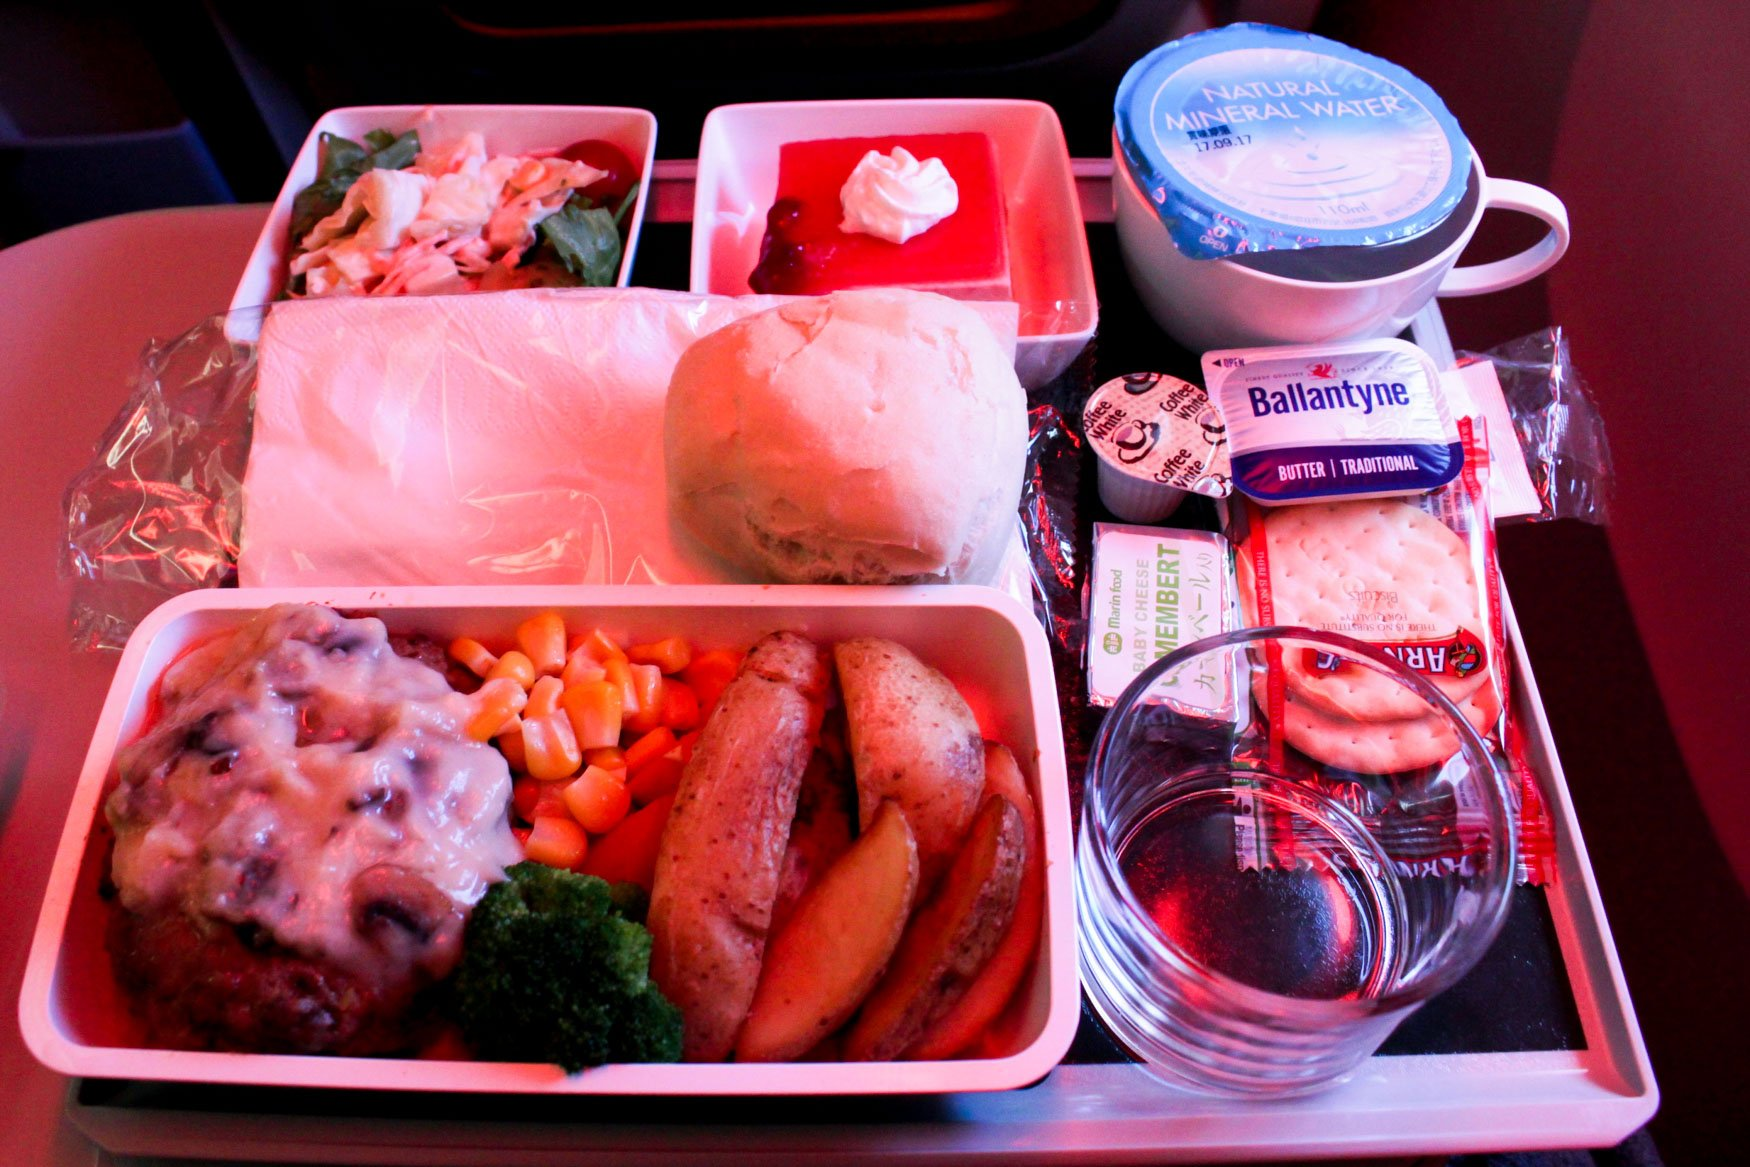 Singapore Airlines Hamburg Beef Meal